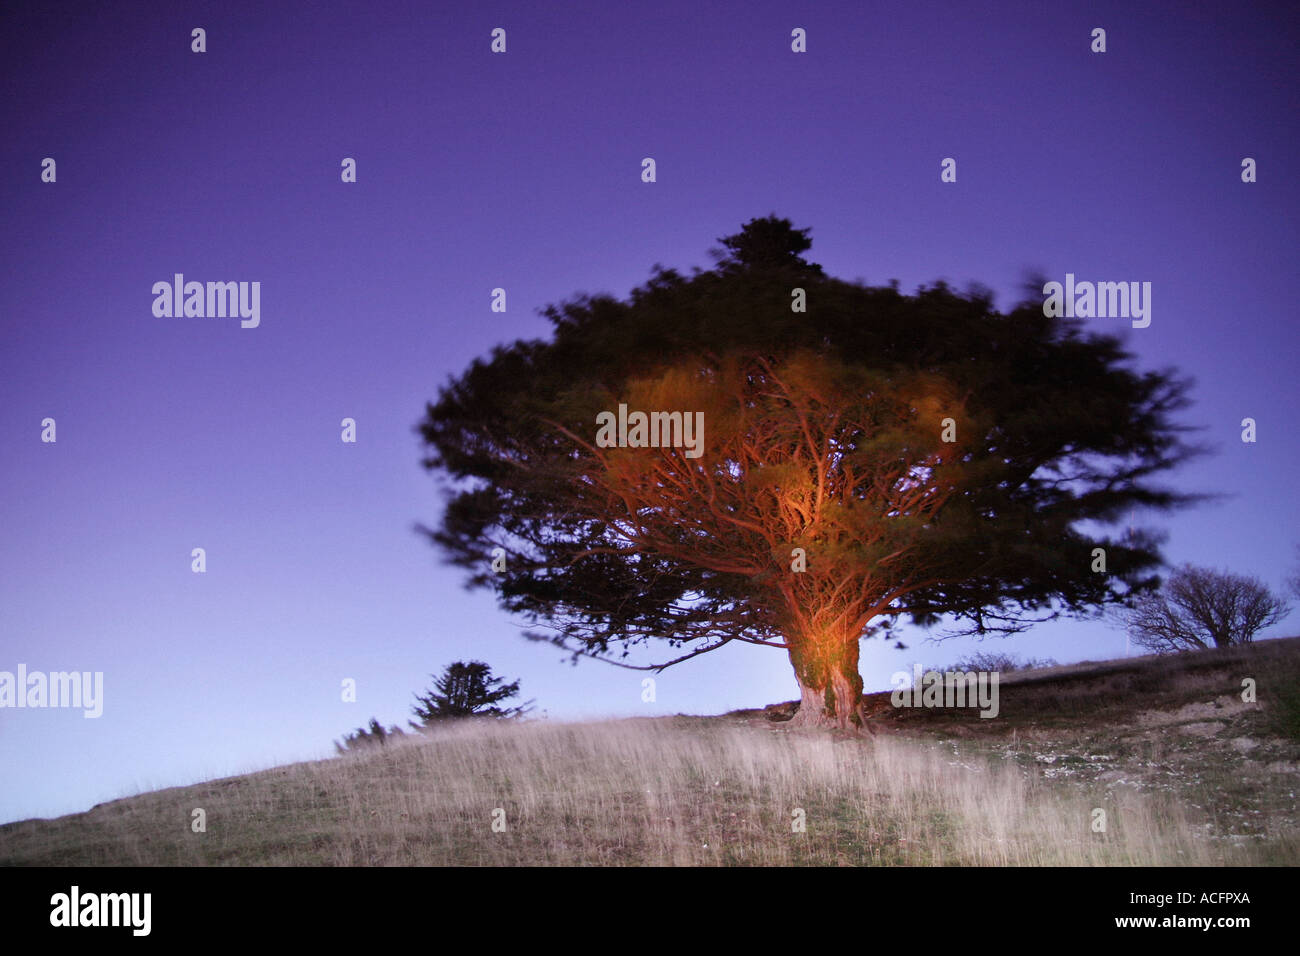 Photo of a tree lit up at night - Stock Image